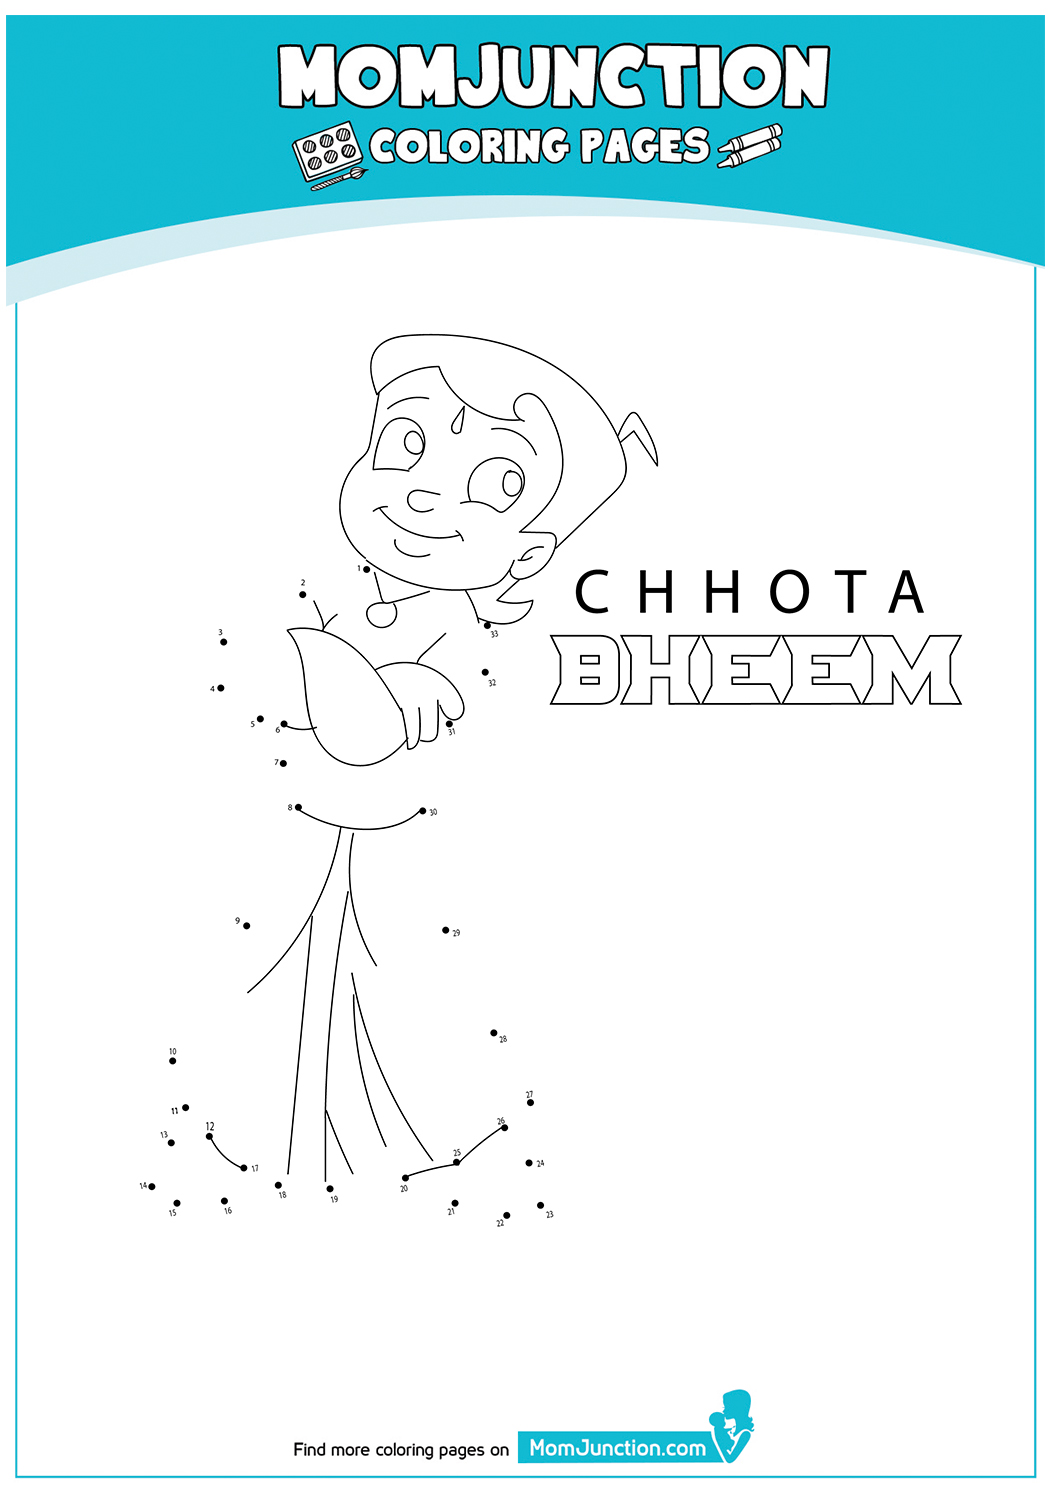 The-Chota-Bheem-17